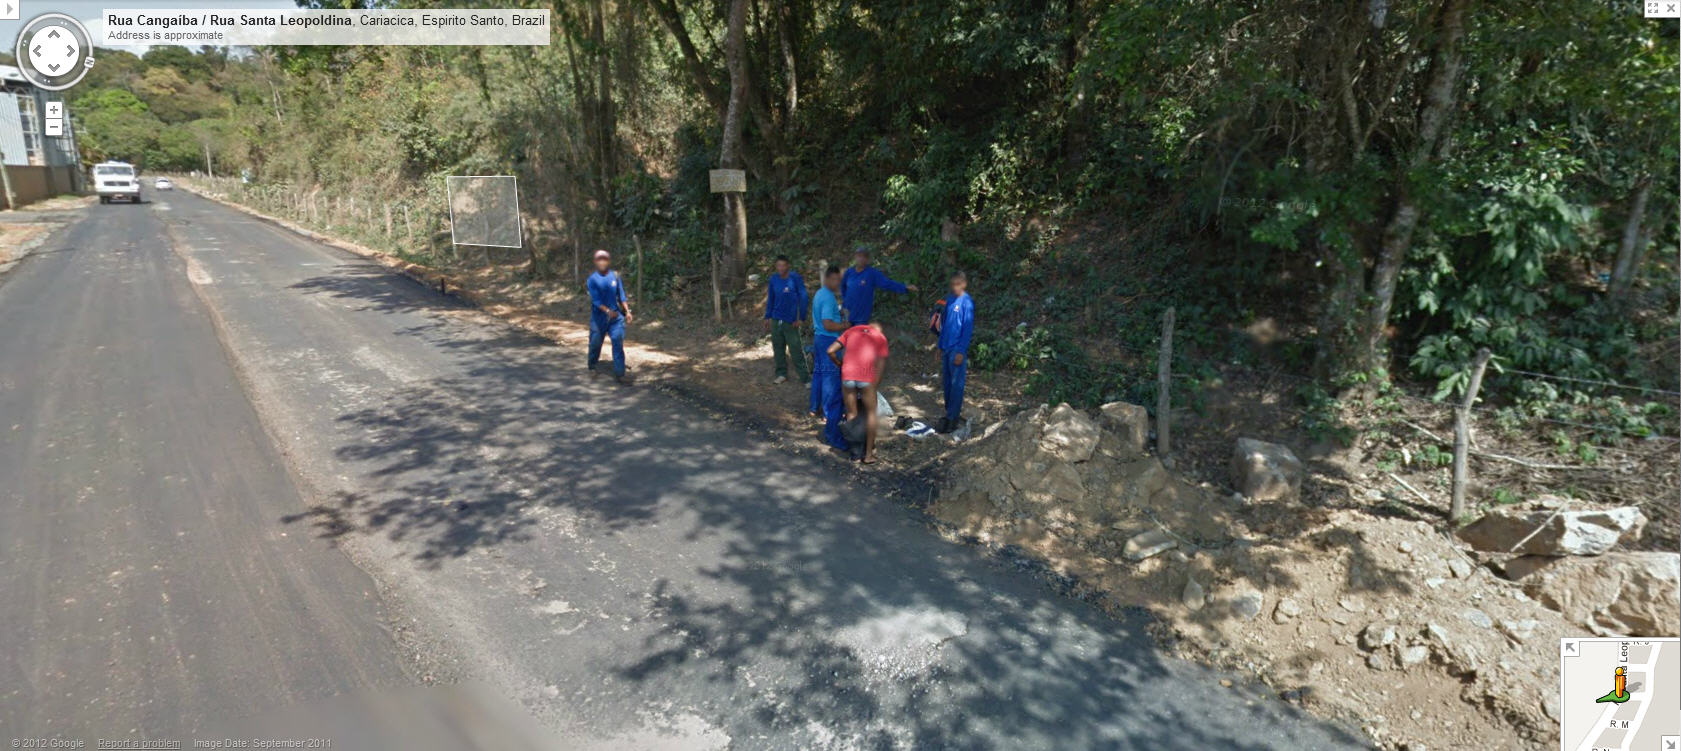 Google Street View Captures a Worker Changing Clothes in zil ... on